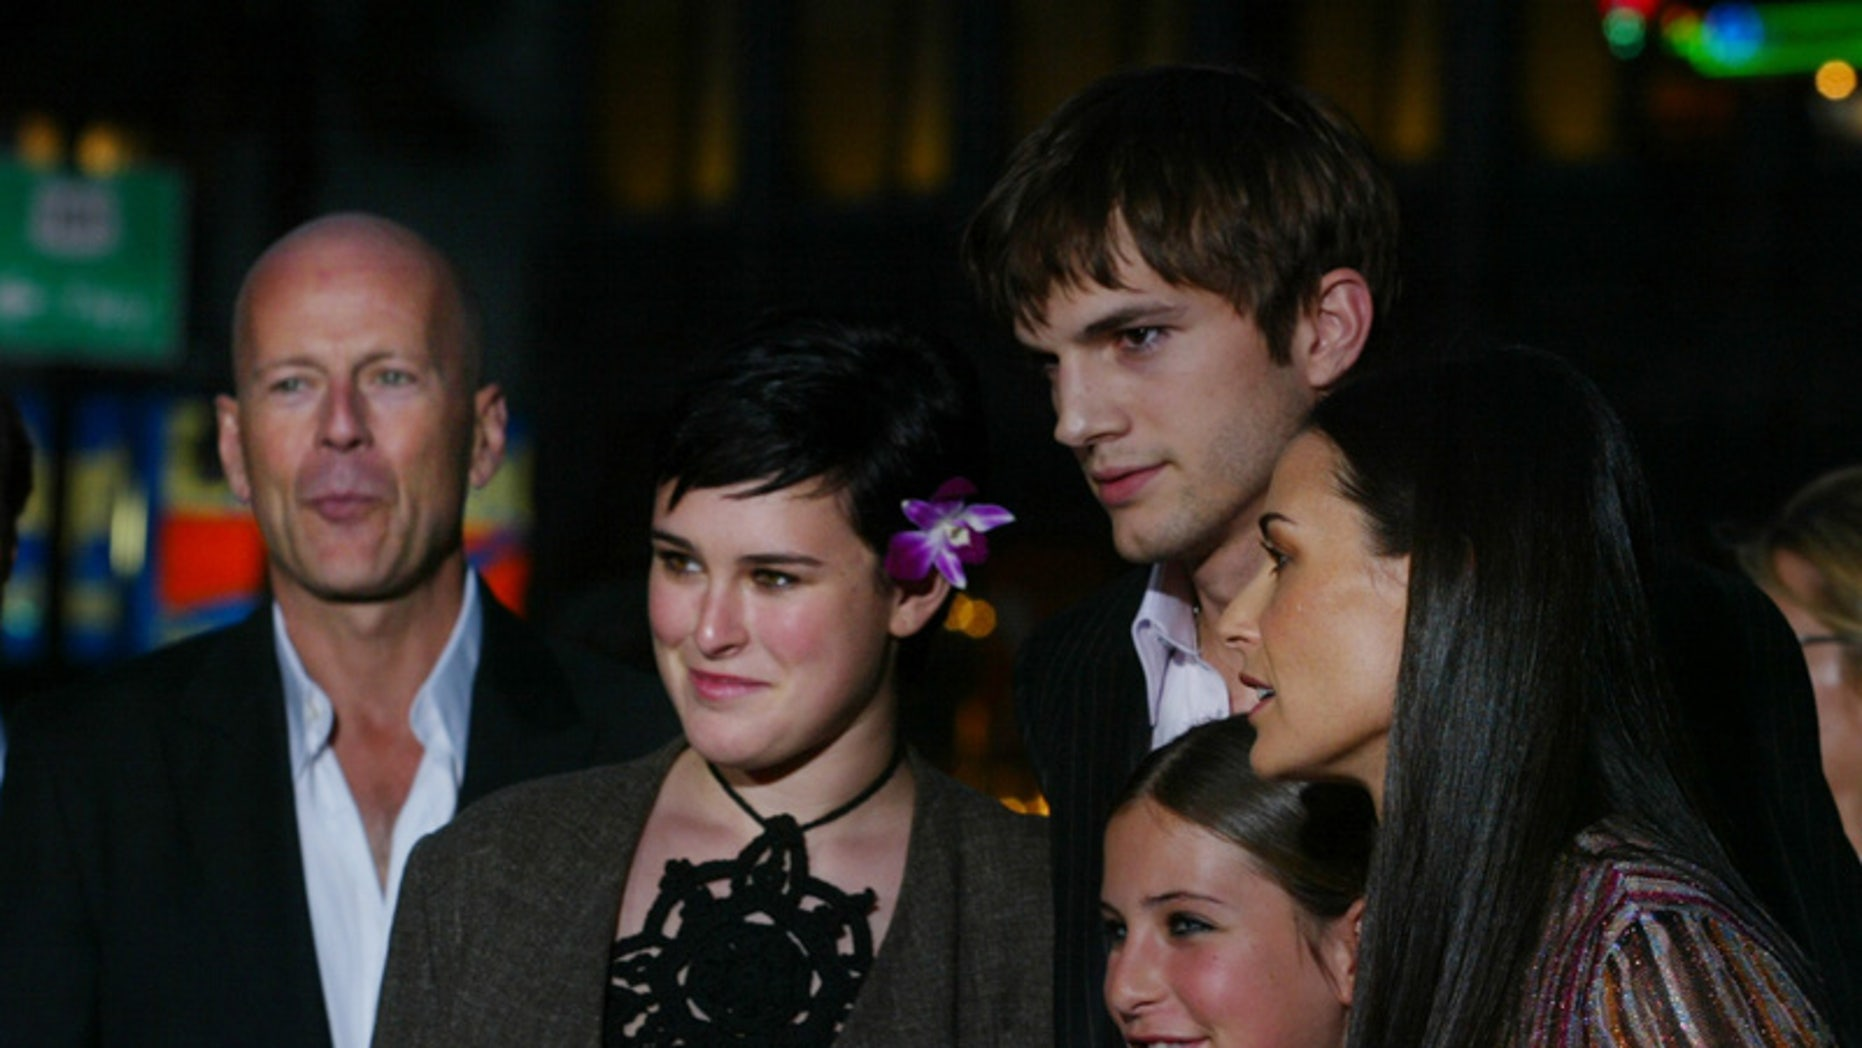 """Actress Demi Moore,(R) one of the stars of the new film """"Charlie's AngelsFull Throttle"""" arrives with actor Ashton Kutcher (C) and her daughters (L-R)Rumer Glenn Willis, Scout LaRue Willis and Tallulah Belle Willis, along withher ex-husband, actor Bruce Willis (Far L) for the film's premiere inHollywood June 18, 2003. Moore and Kutcher have reportedly been dating. Thefilm stars Lucy Liu, Drew Barrymore and Cameron Diaz and opens June 27 inthe United States.      PP03060056         Pictures of the Year 2003REUTERS/Fred ProuserFSP"""